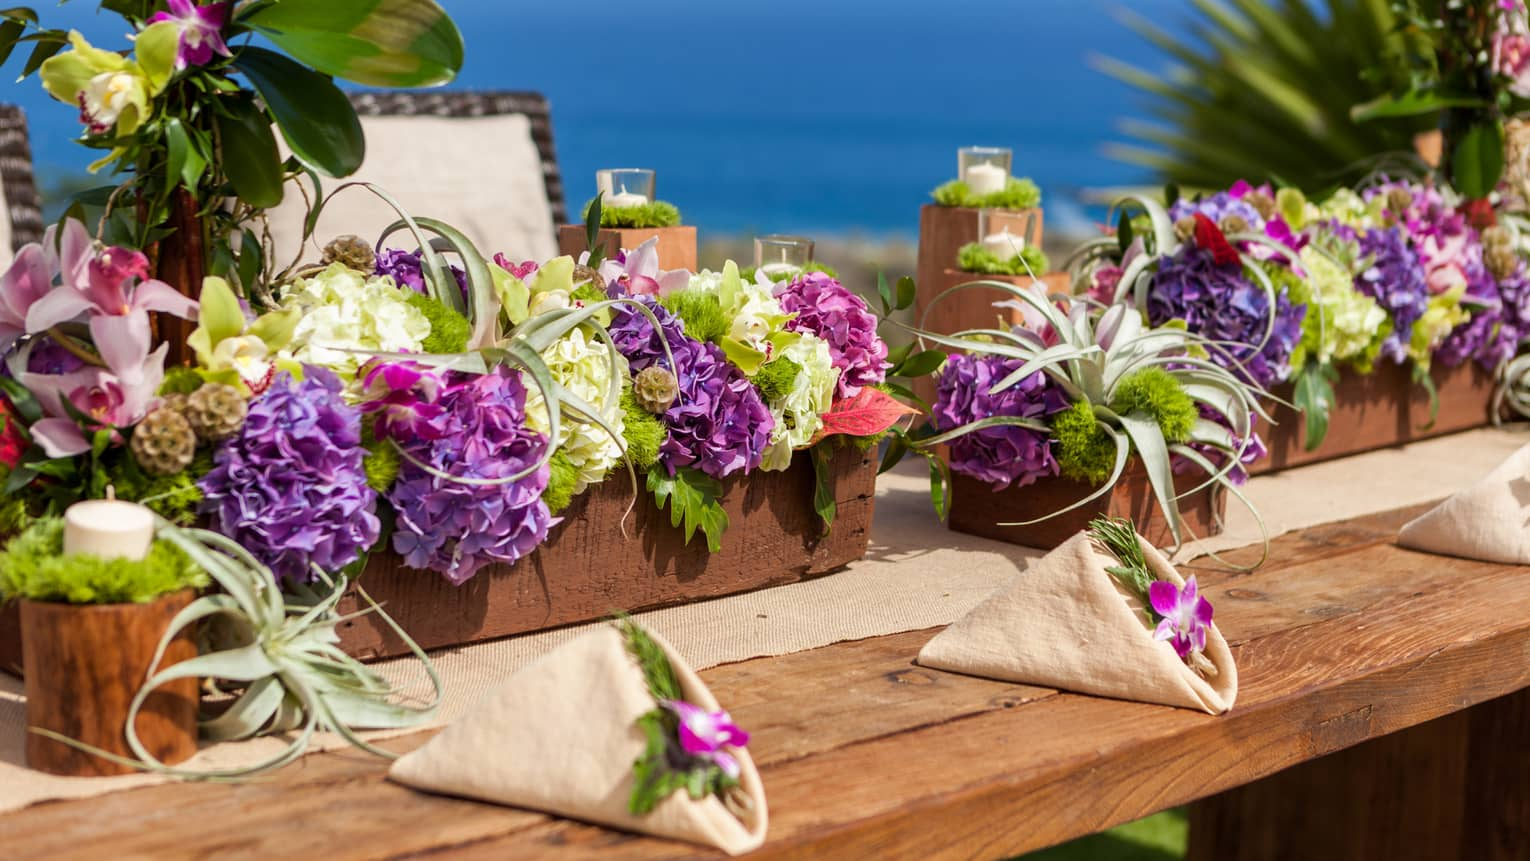 Long floral wedding centerpieces are set on a table overlooking the ocean in Lanai Hawaii